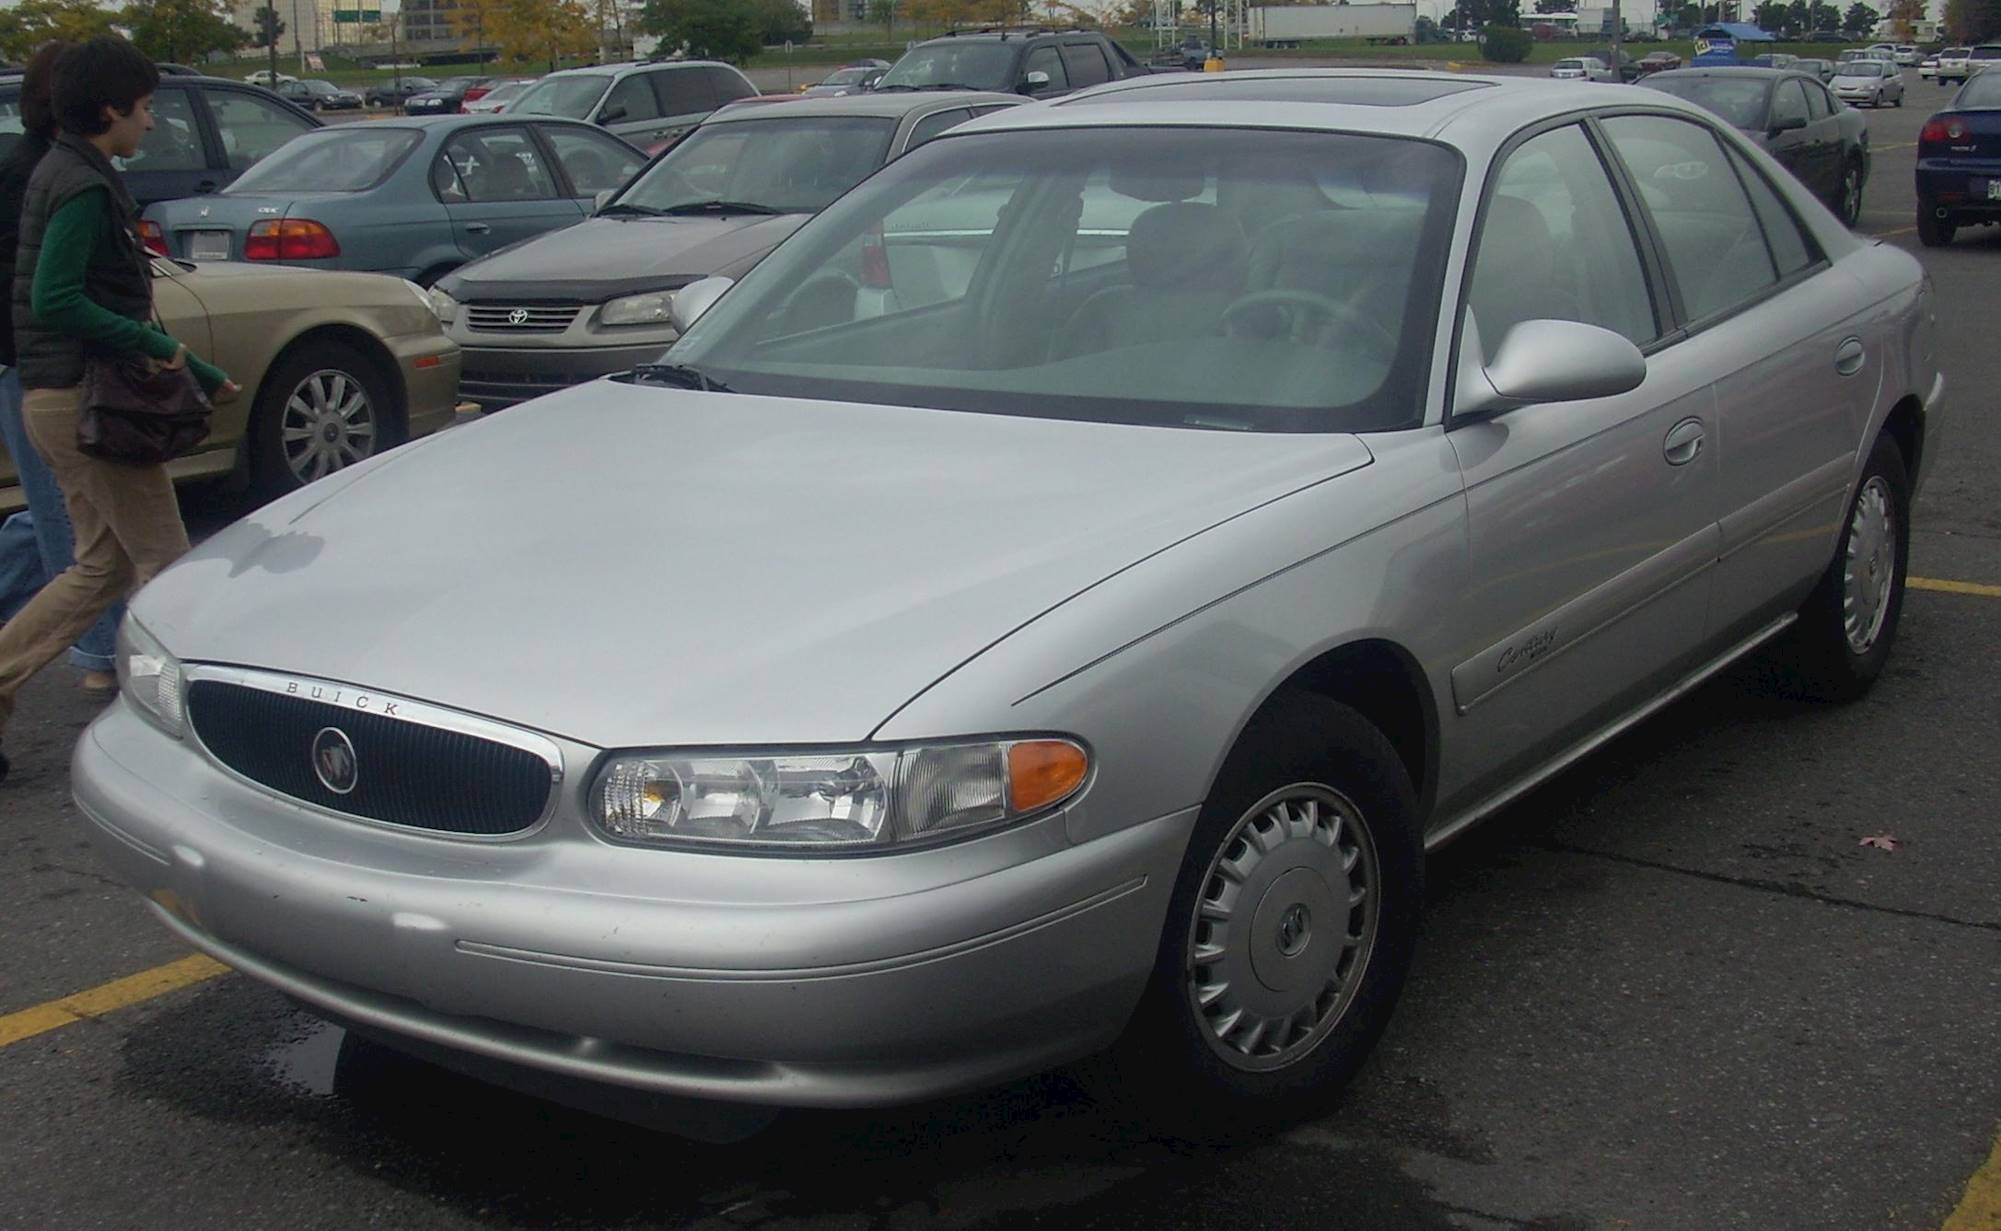 2002 Buick Century Owners Manual